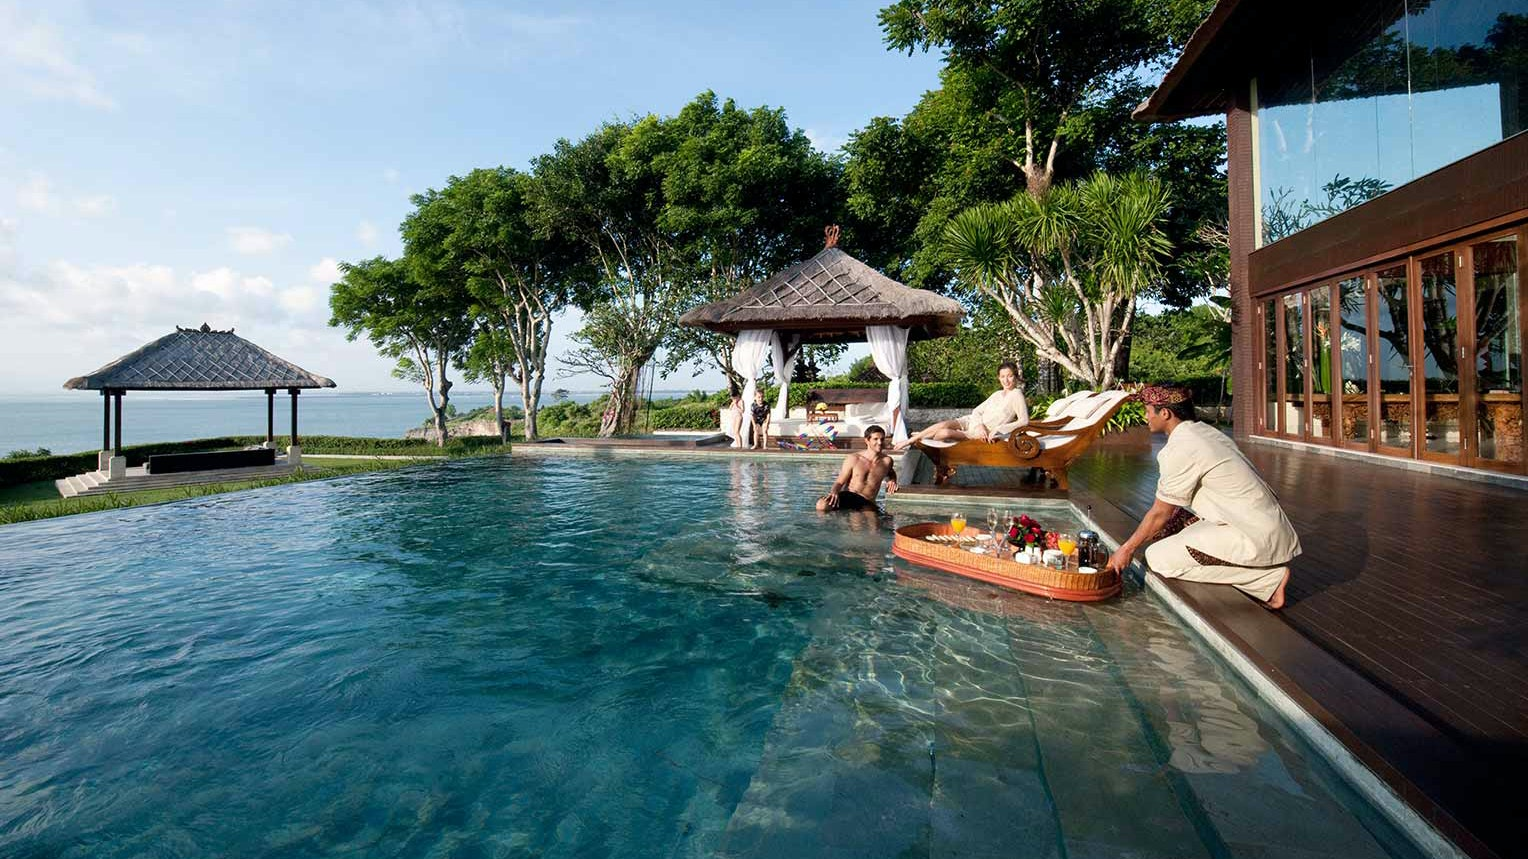 Start your V-Day in Bali in the pool with AYANA Resort's floating champagne breakfast.